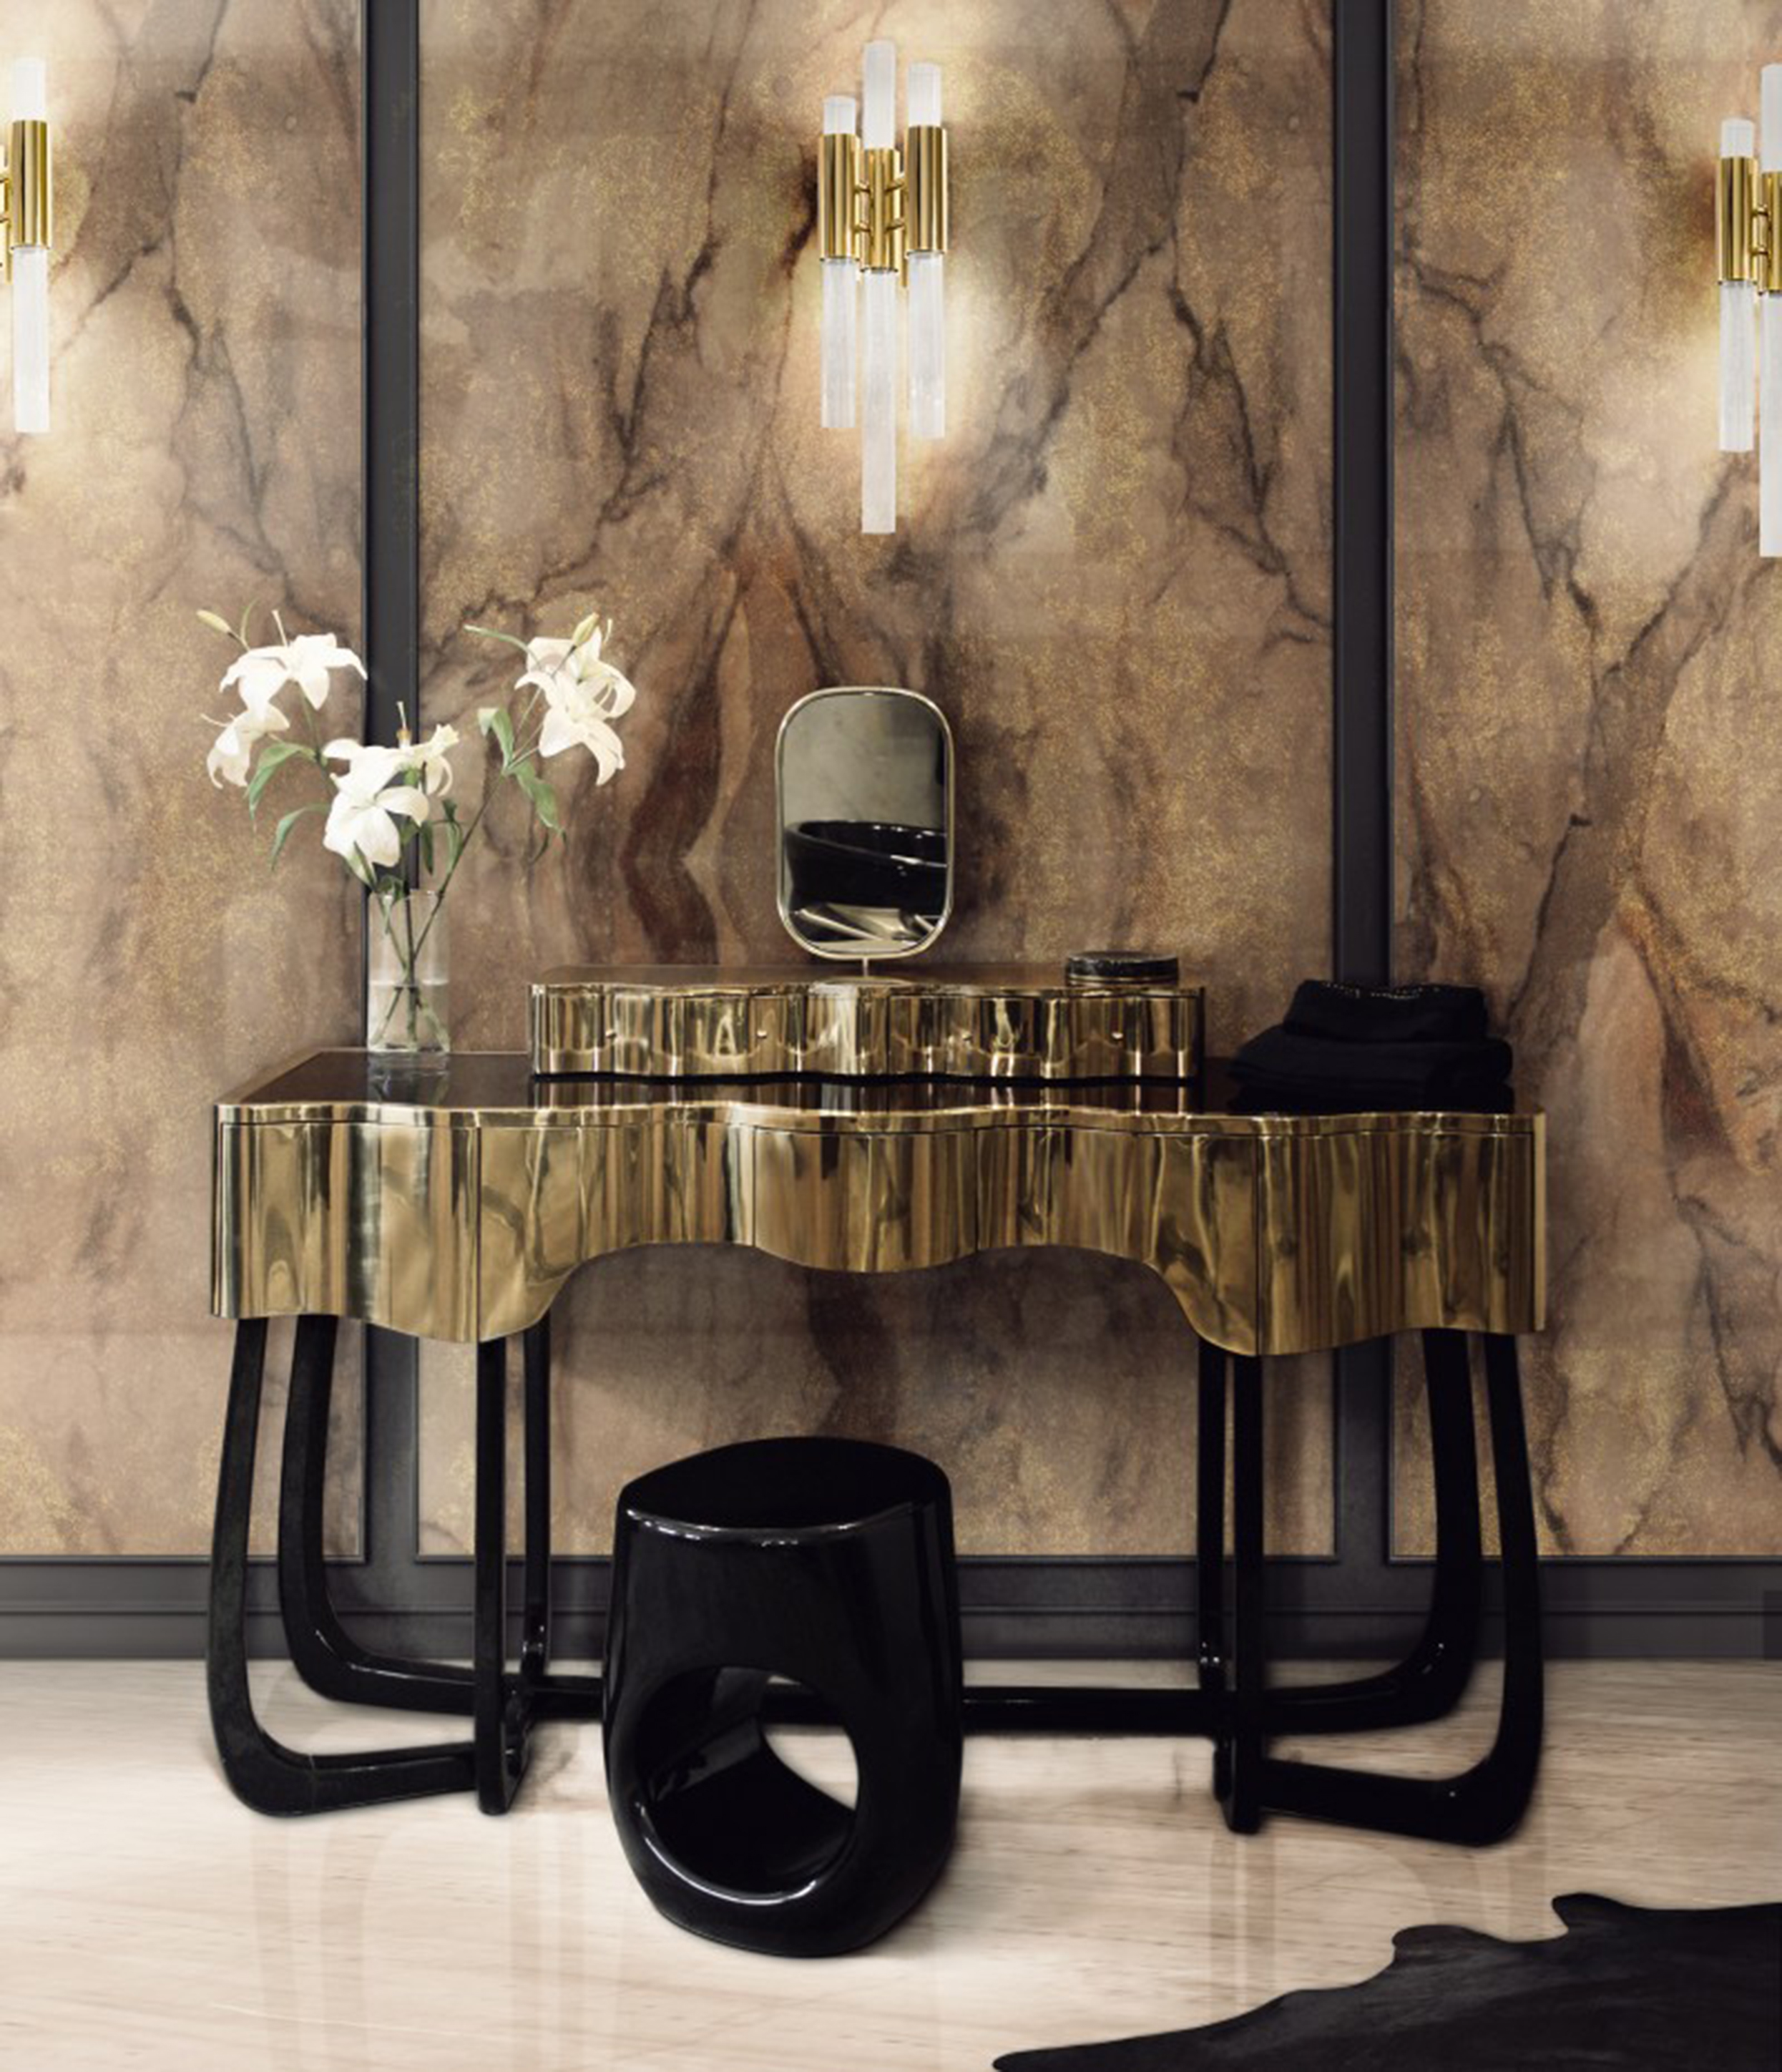 New Level of Luxury: Sumptuous Surfaces surfaces New Level of Luxury: Sophisticated Surfaces extraordinary sinuous dressing table bronze rust surface 1